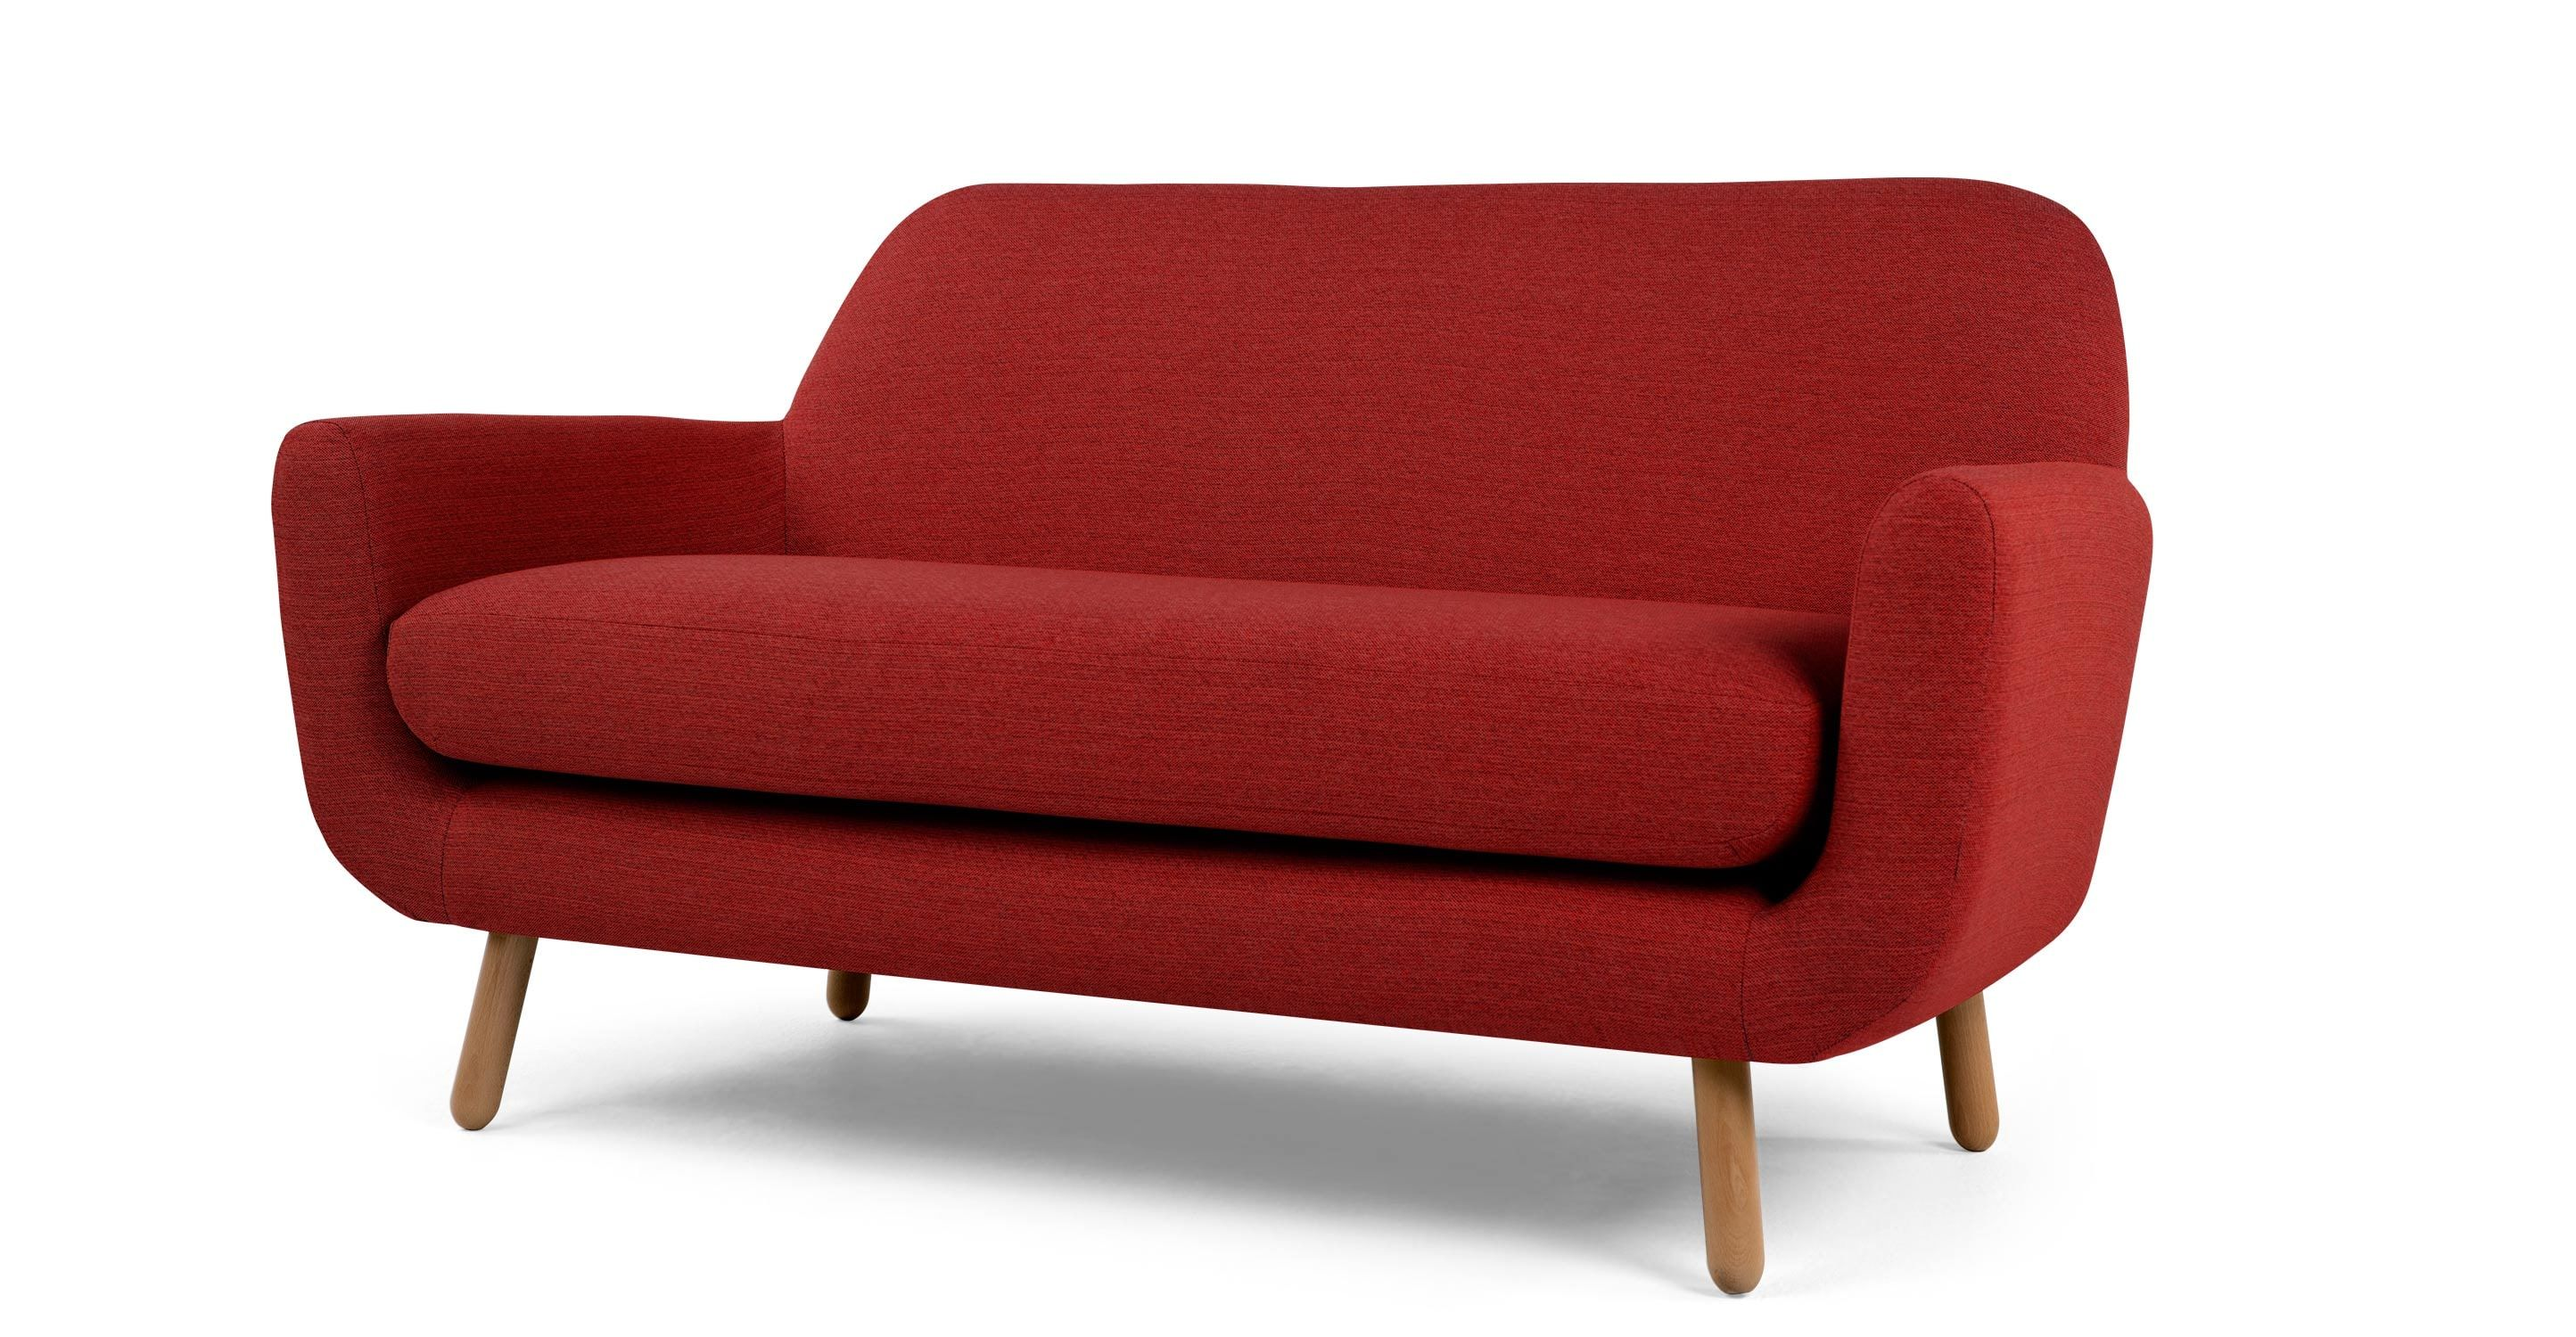 ikea klippan sofa cover red 1 and 2 chairs seater slipcover to fit